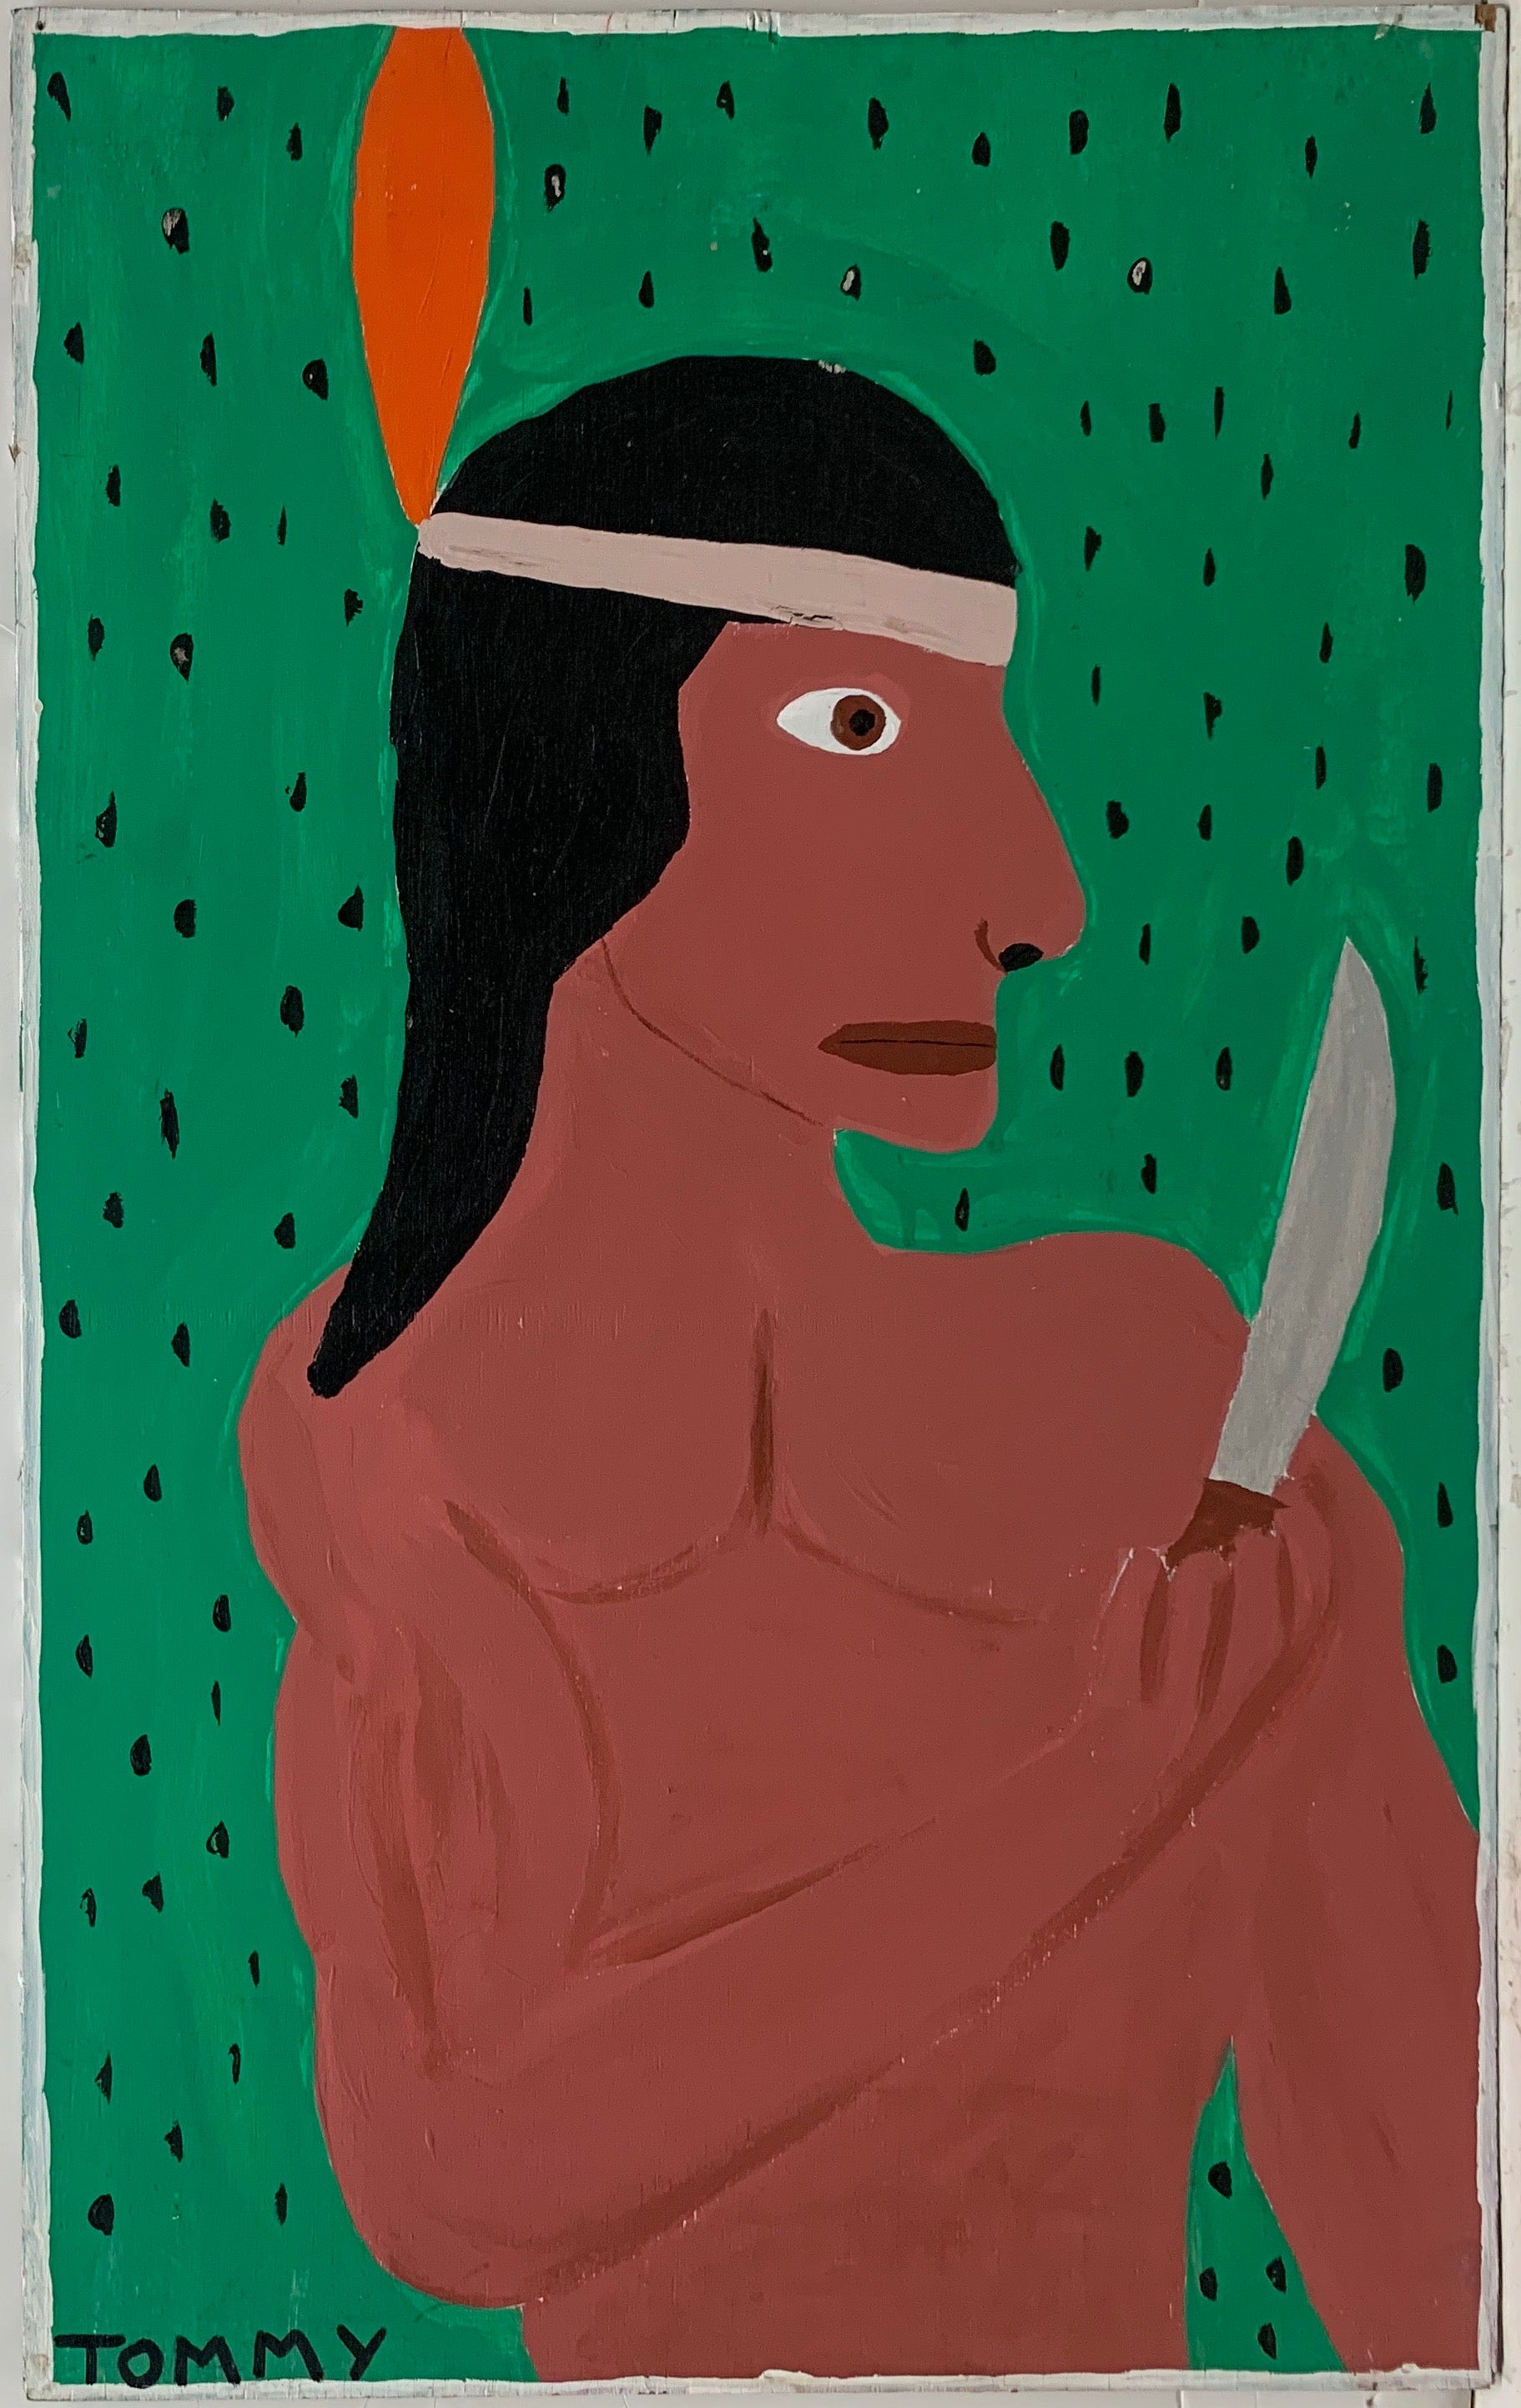 A Tommy  Cheng portrait of a Native American in profile, holding a knife, with a red feather in his hair.